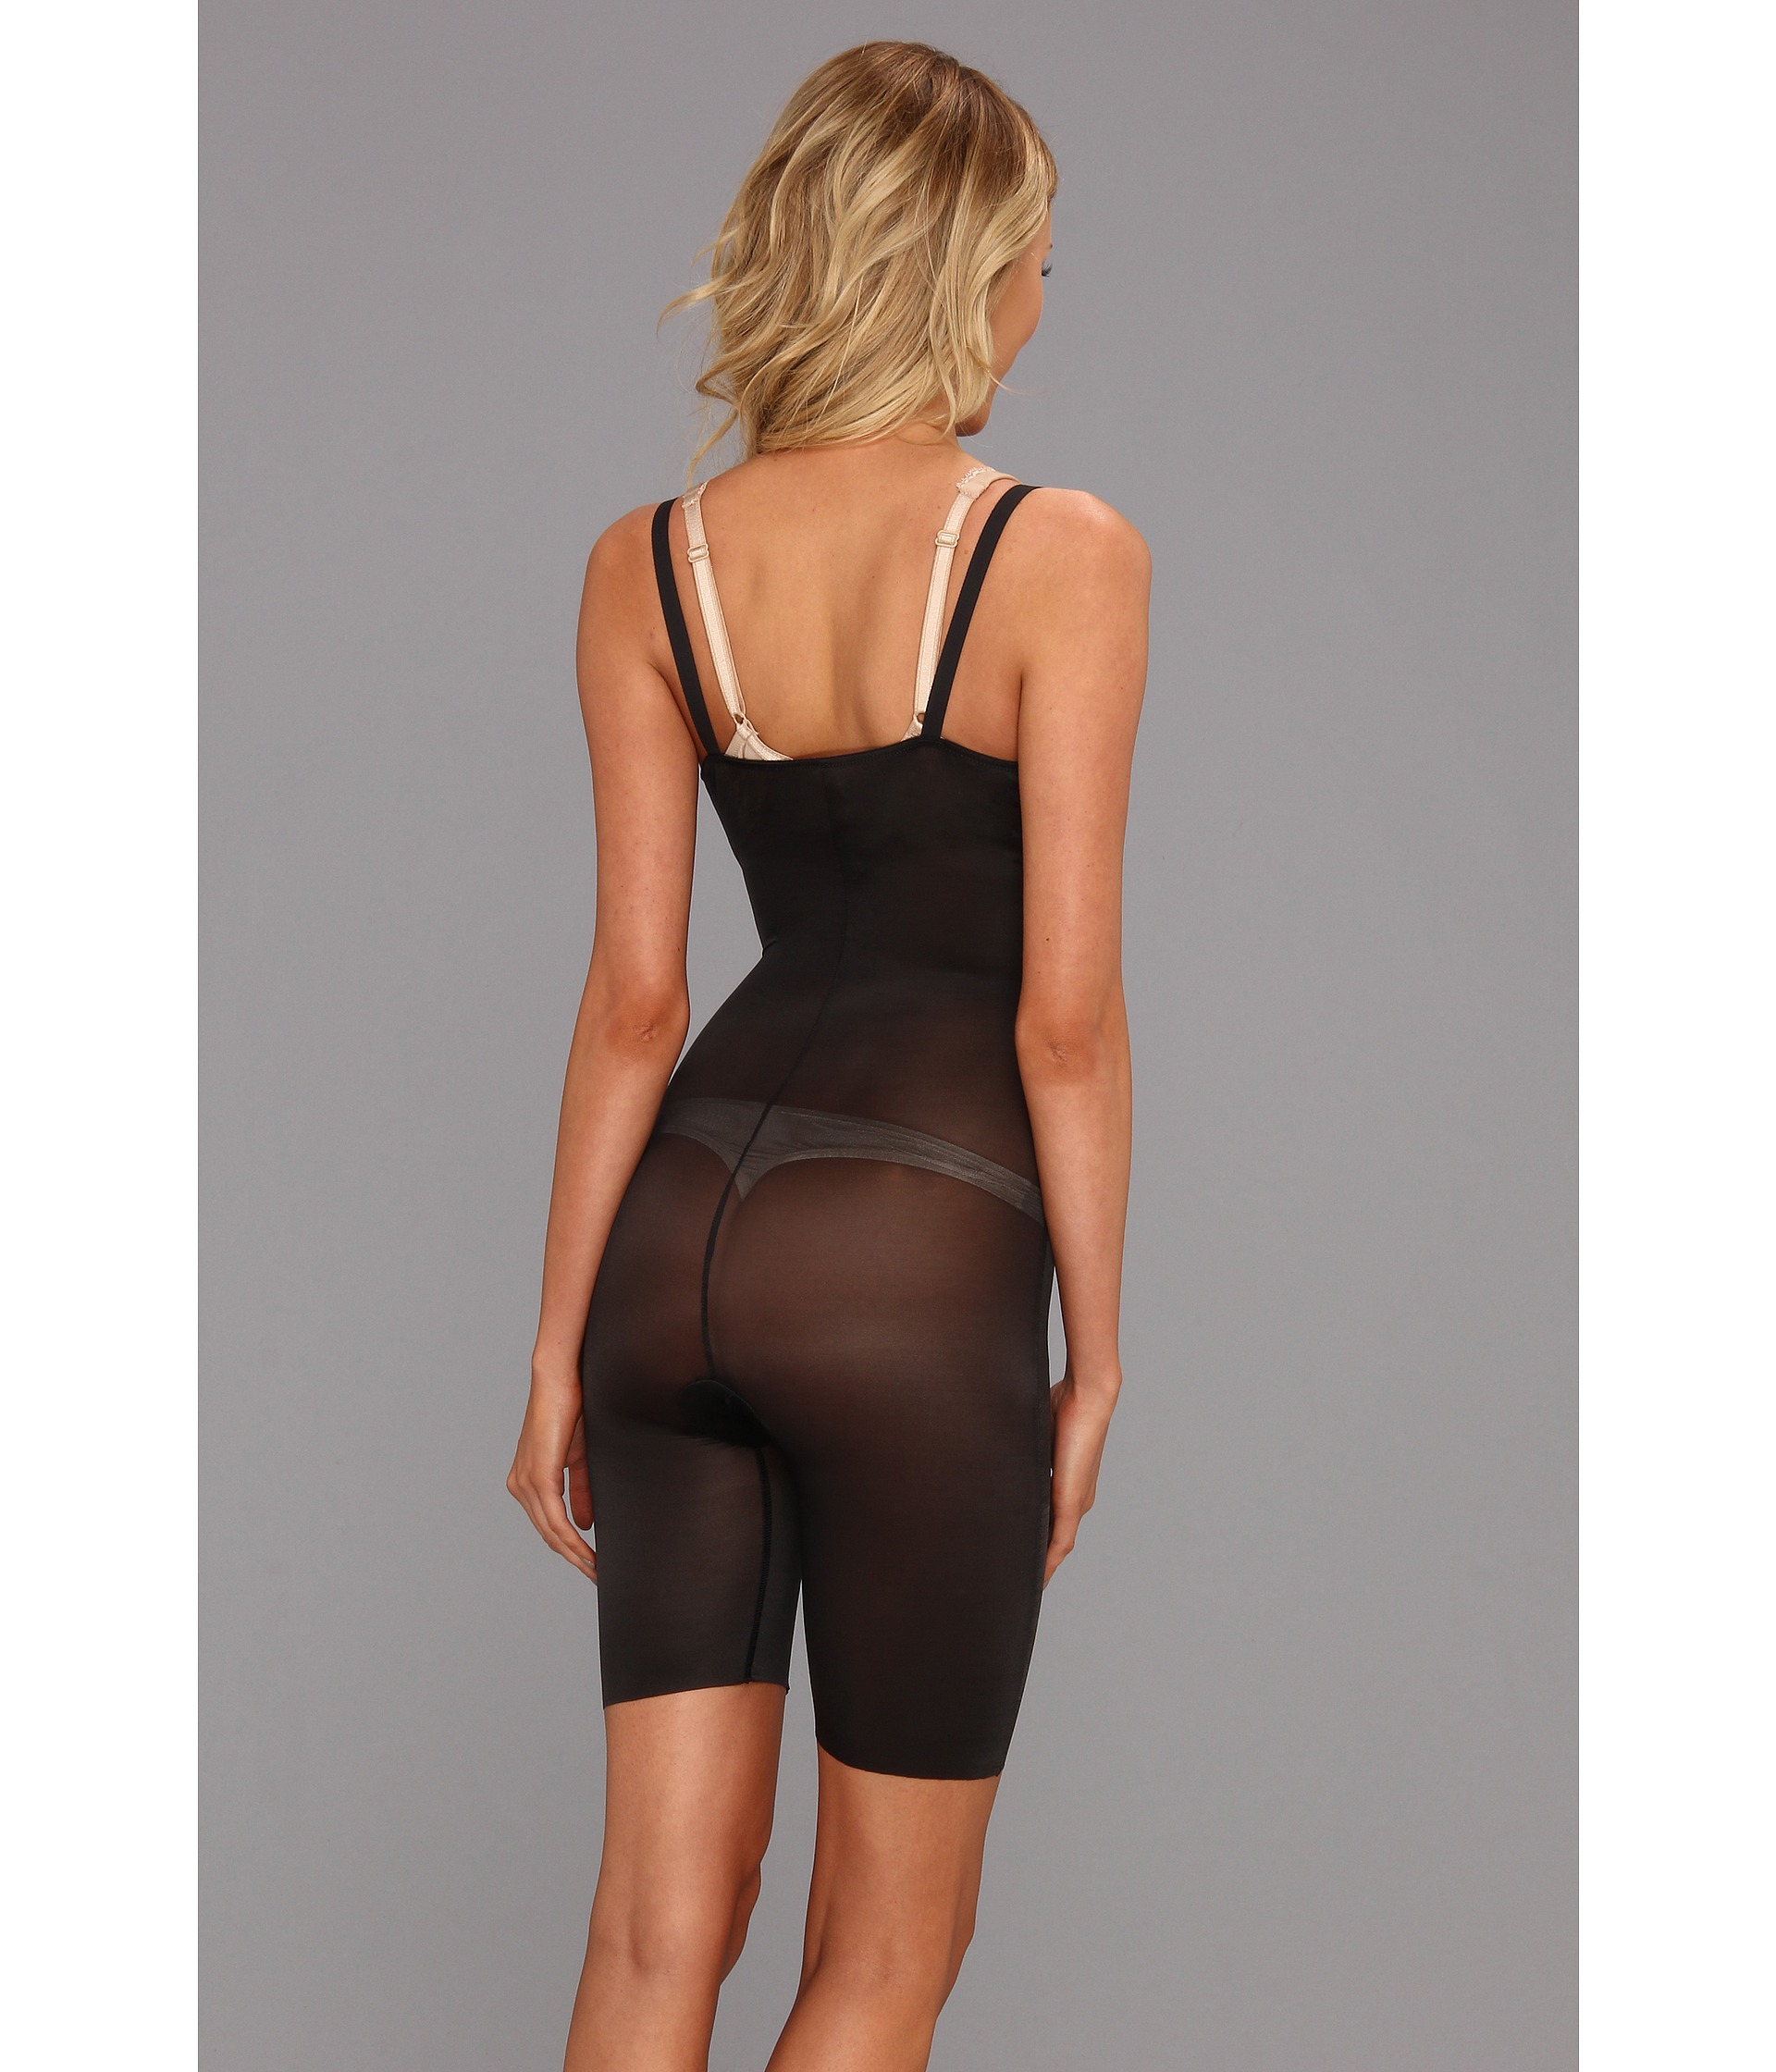 7ee9f4f896c Spanx Skinny Britches® Super Open-bust Mid-thigh Body Shaper in Black - Lyst